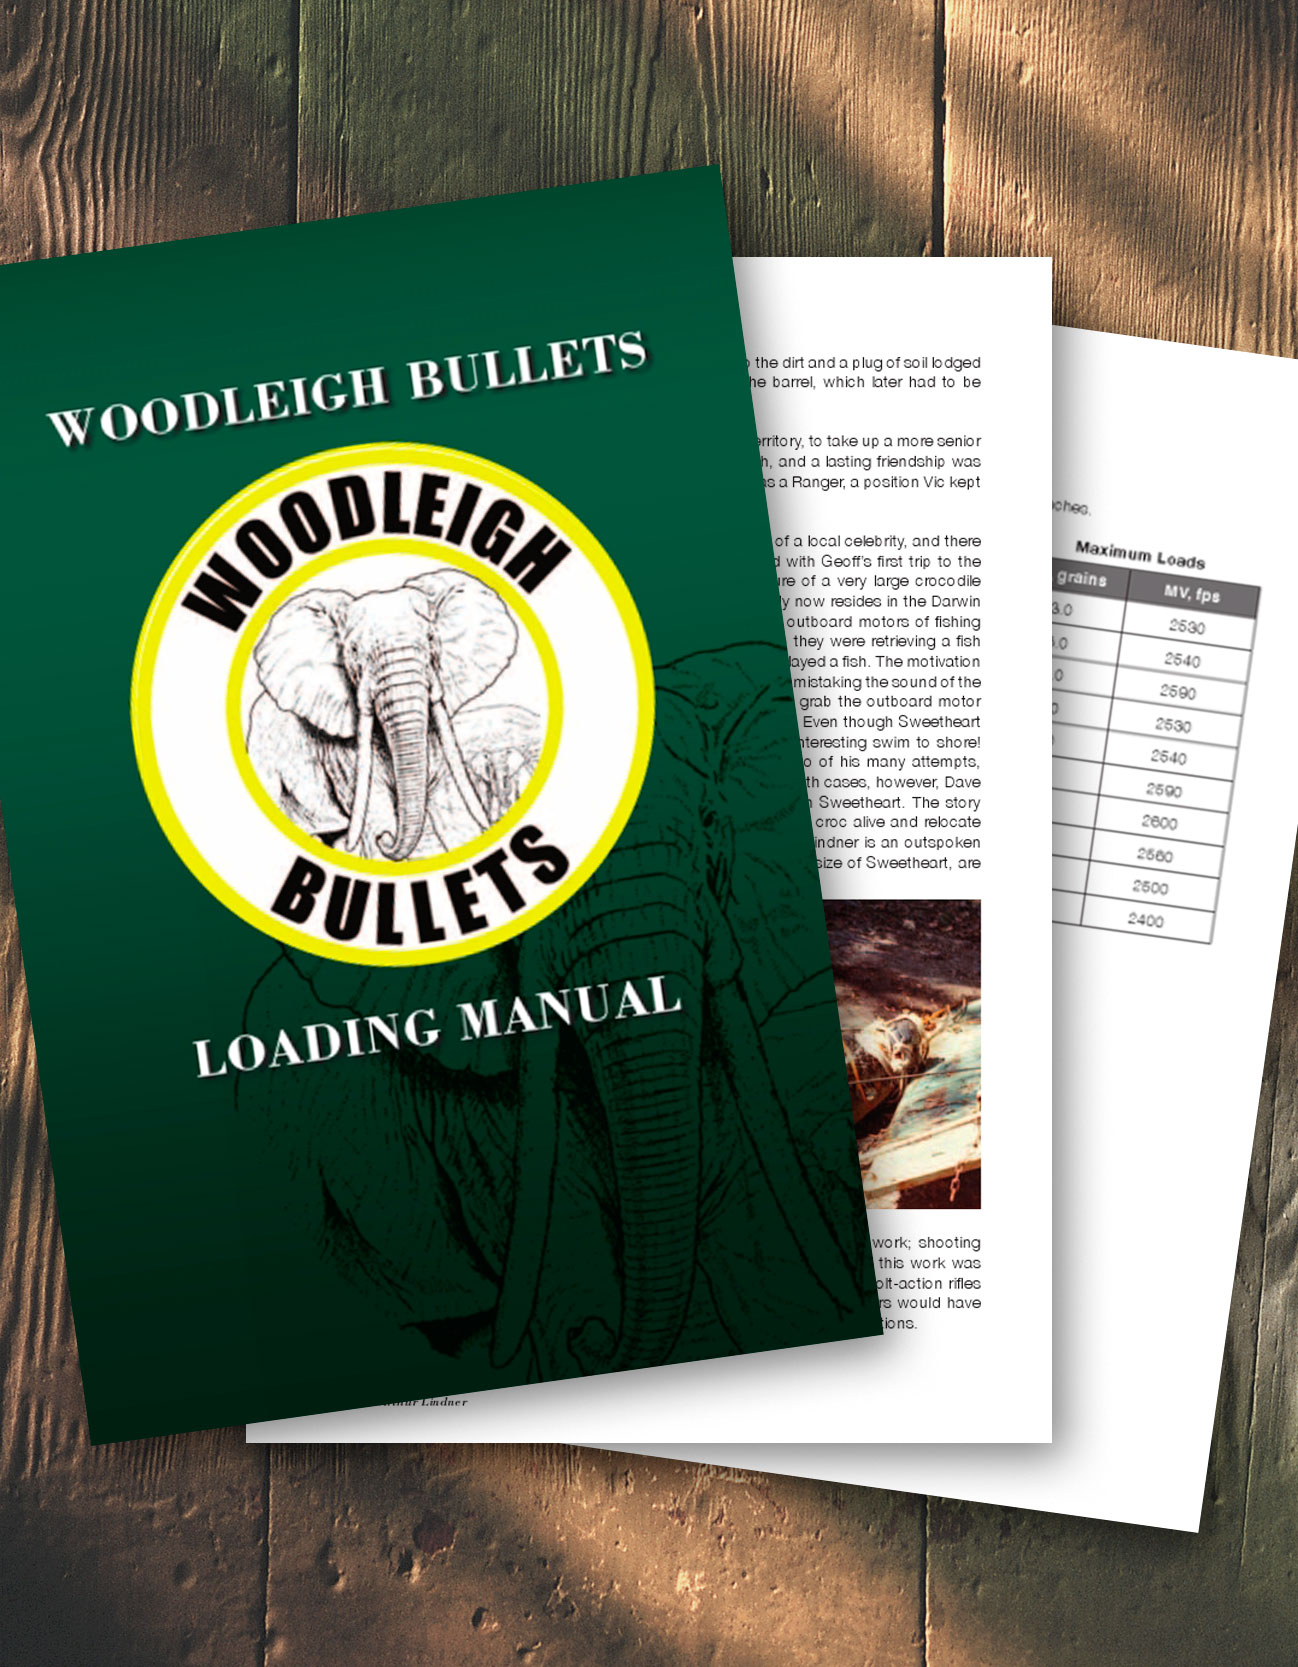 Woodleigh Bullets Loading Manual